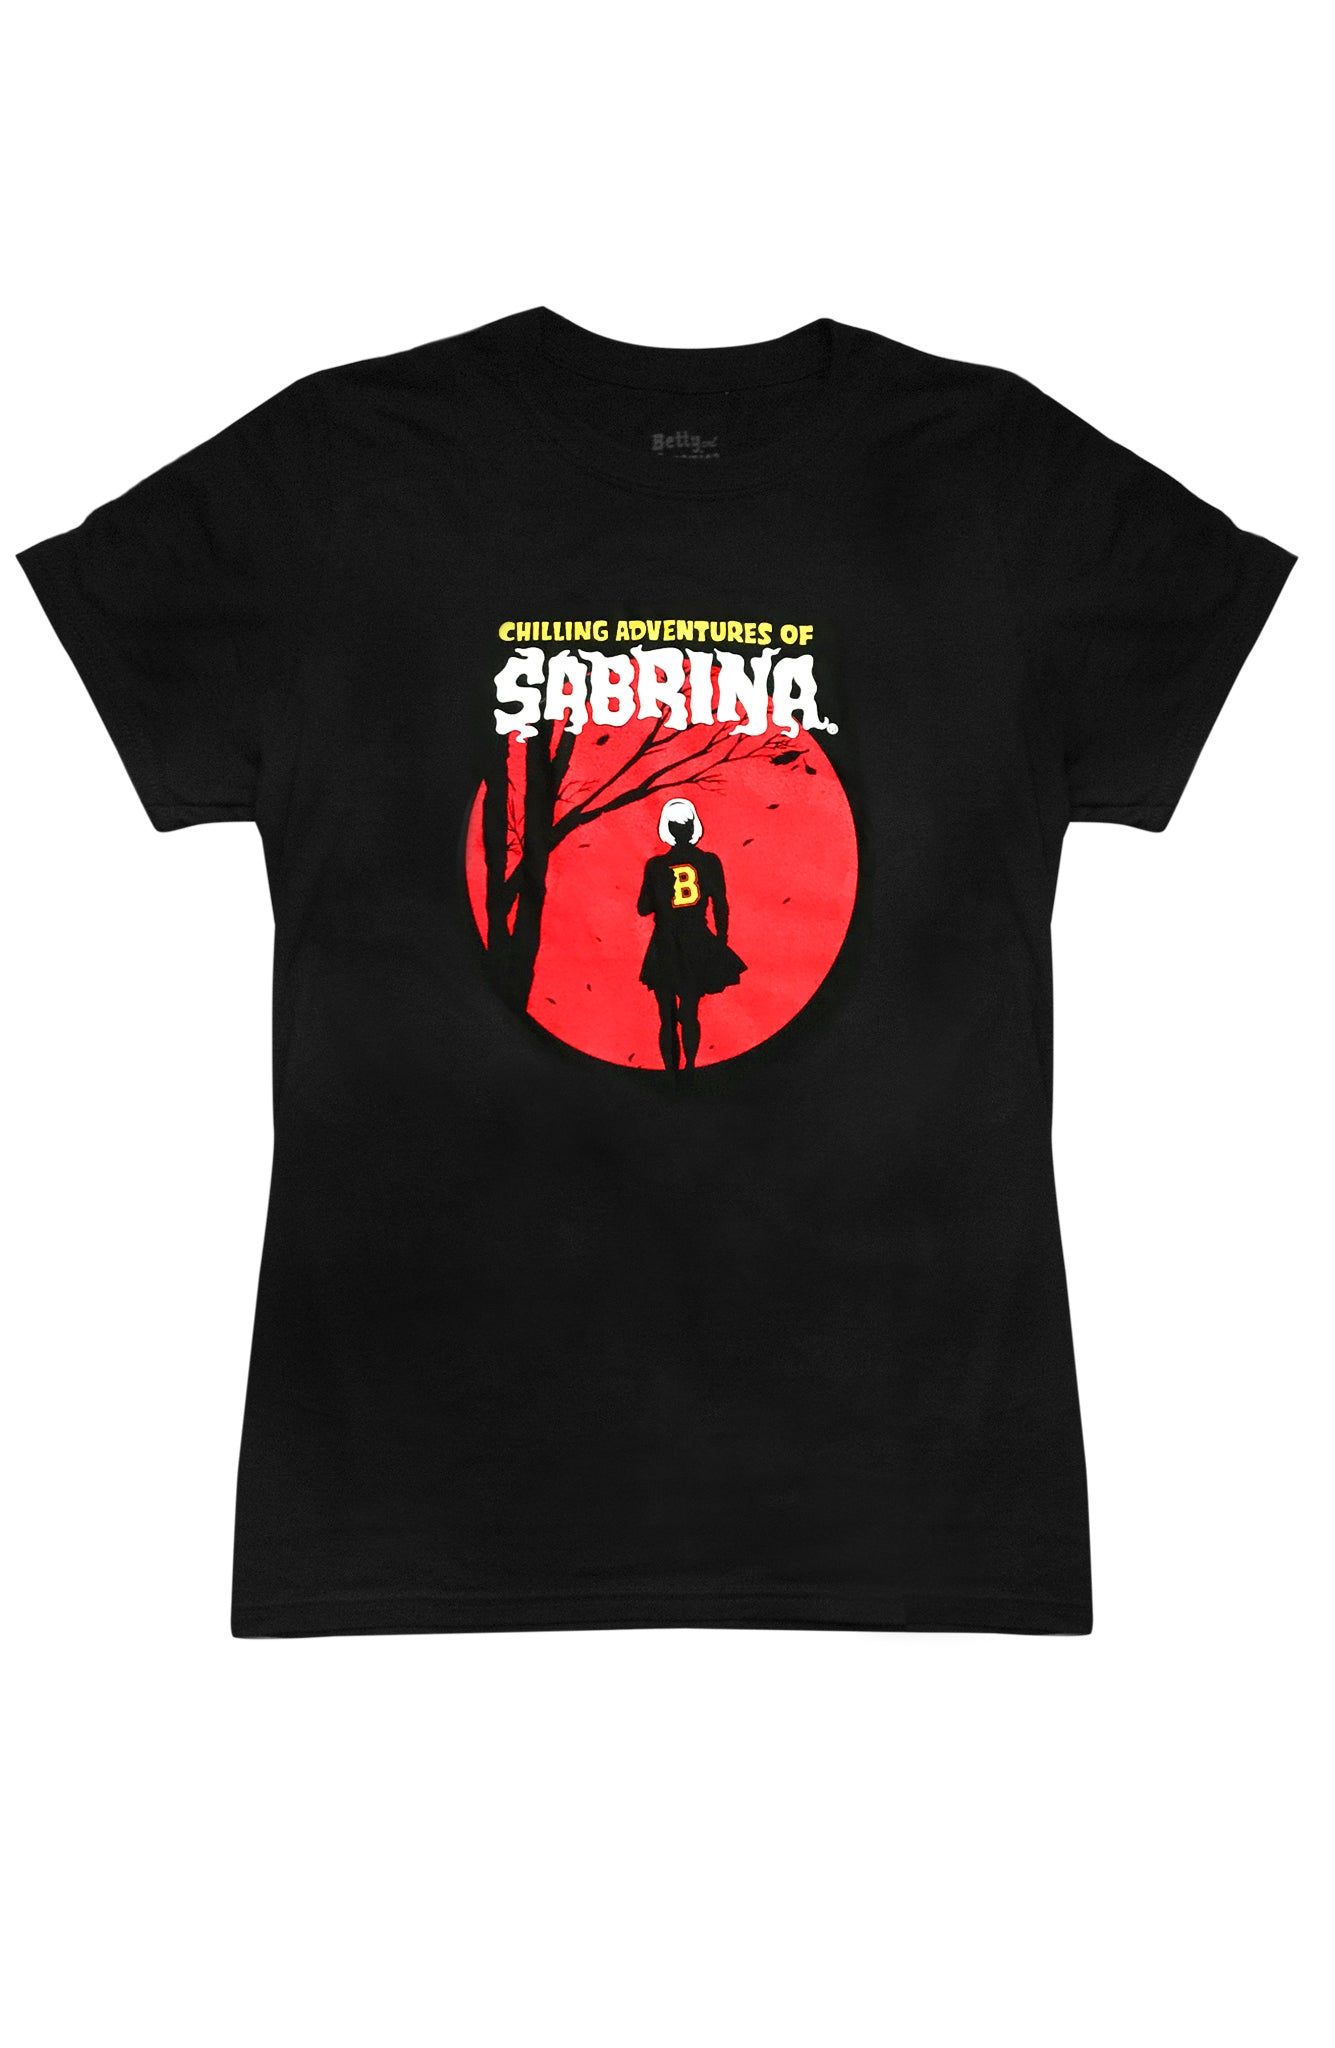 Chilling Adventures of Sabrina Tee - Unisex